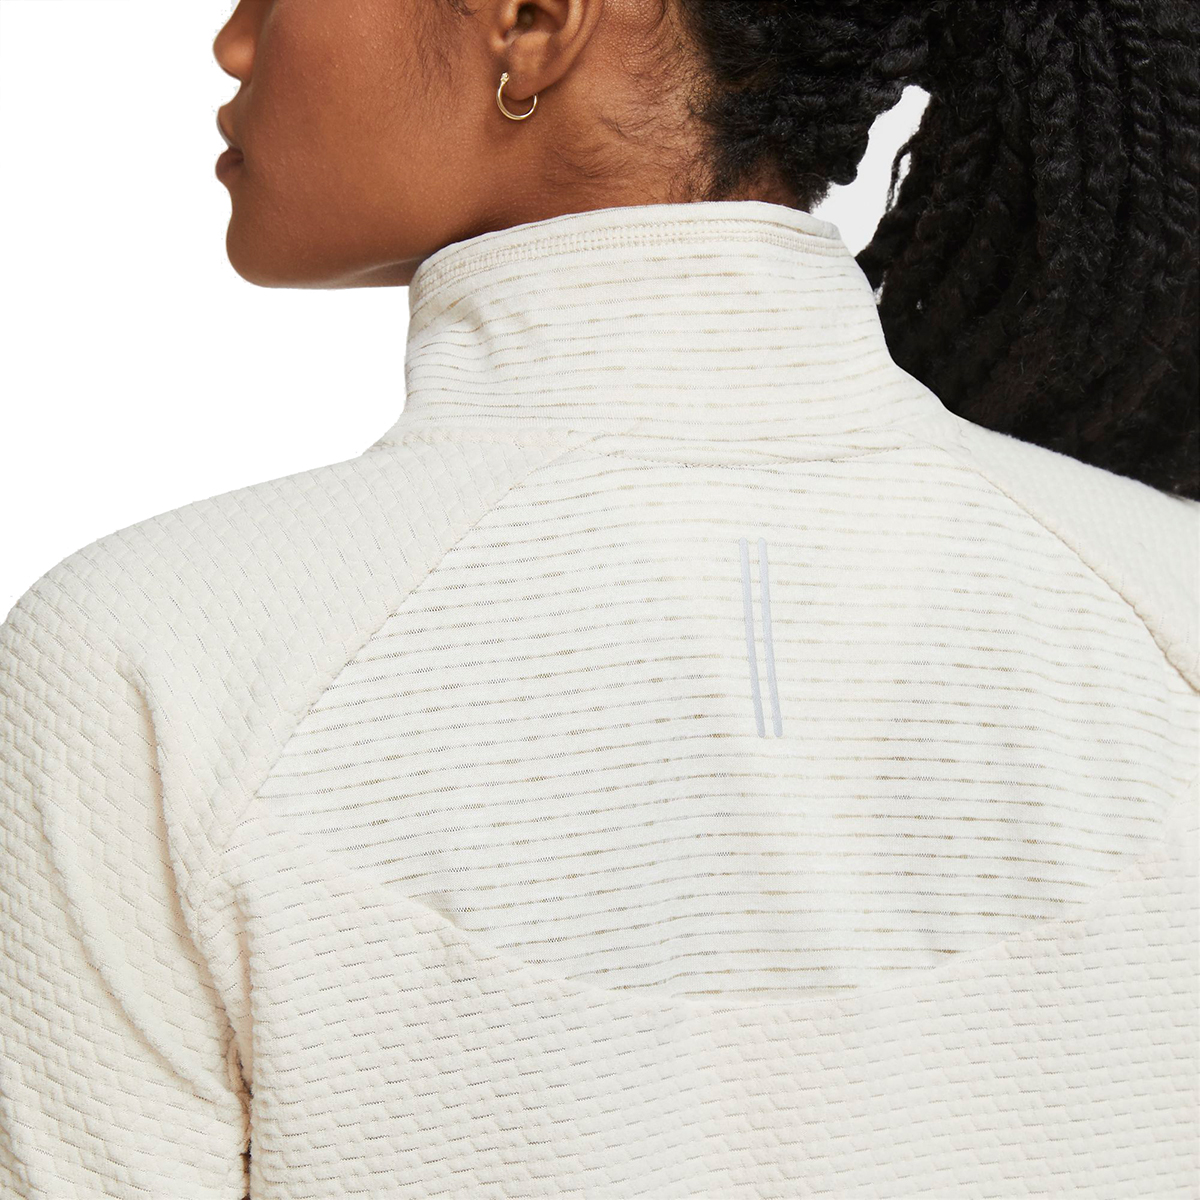 Women's Nike Sphere Half Zip Long Sleeve Shirt - Color: Oatmeal/Heather - Size: XS, Oatmeal/Heather, large, image 4